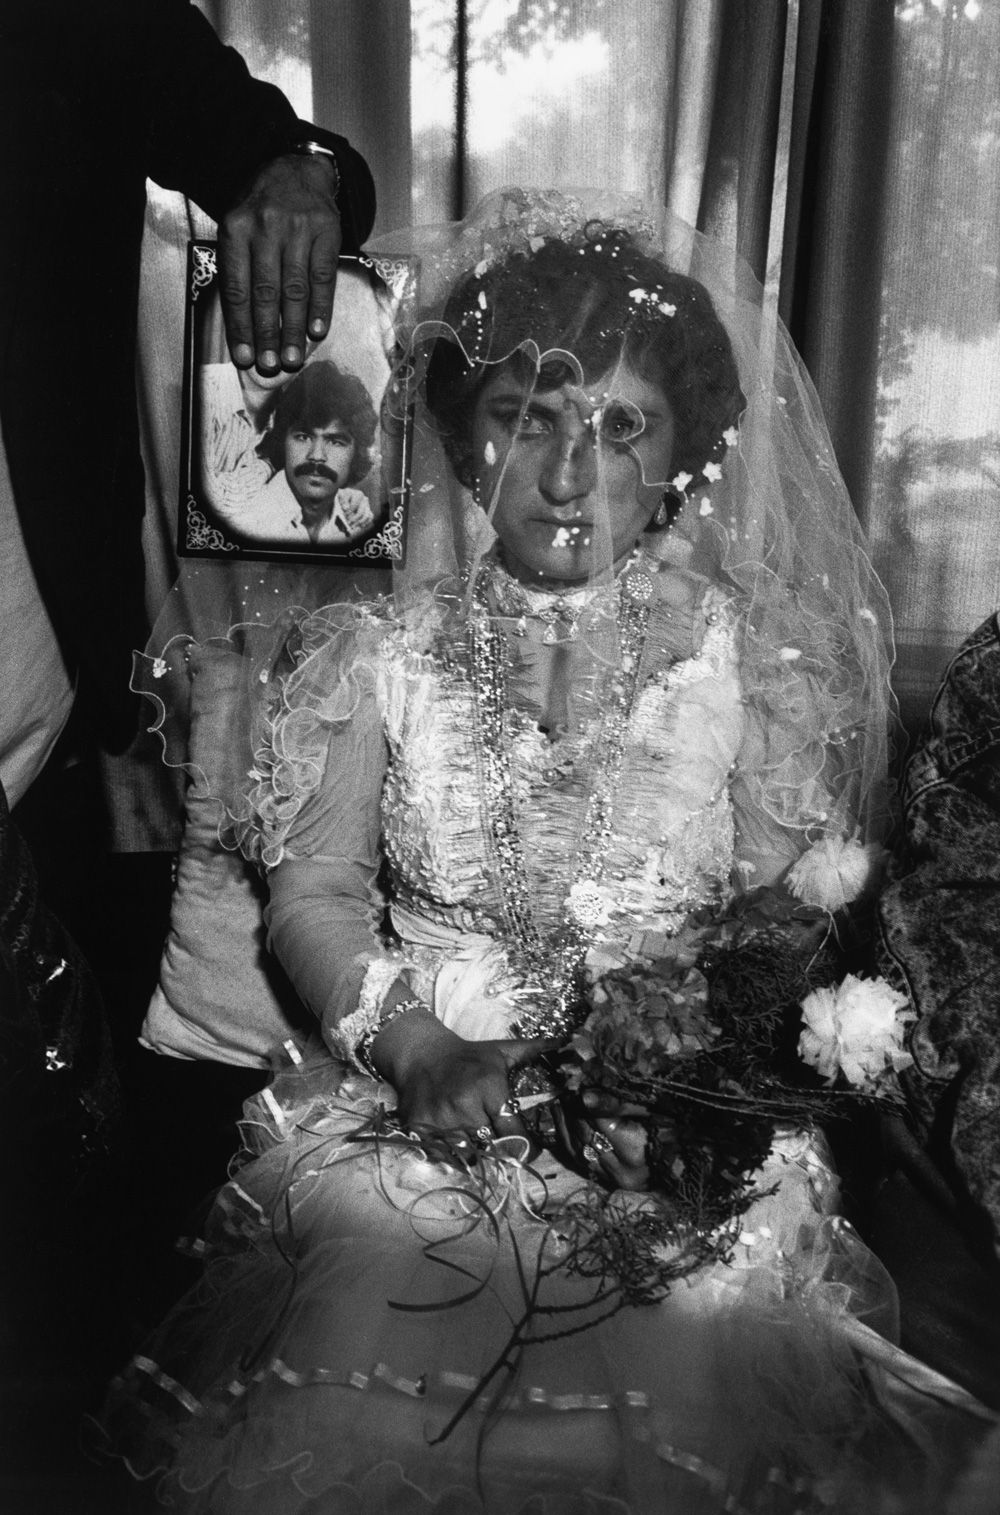 AFGHANISTAN. Kabul. A wedding by proxy- the woman's fiancé, who migrated to Germany, is present in the photograph only. 1992.